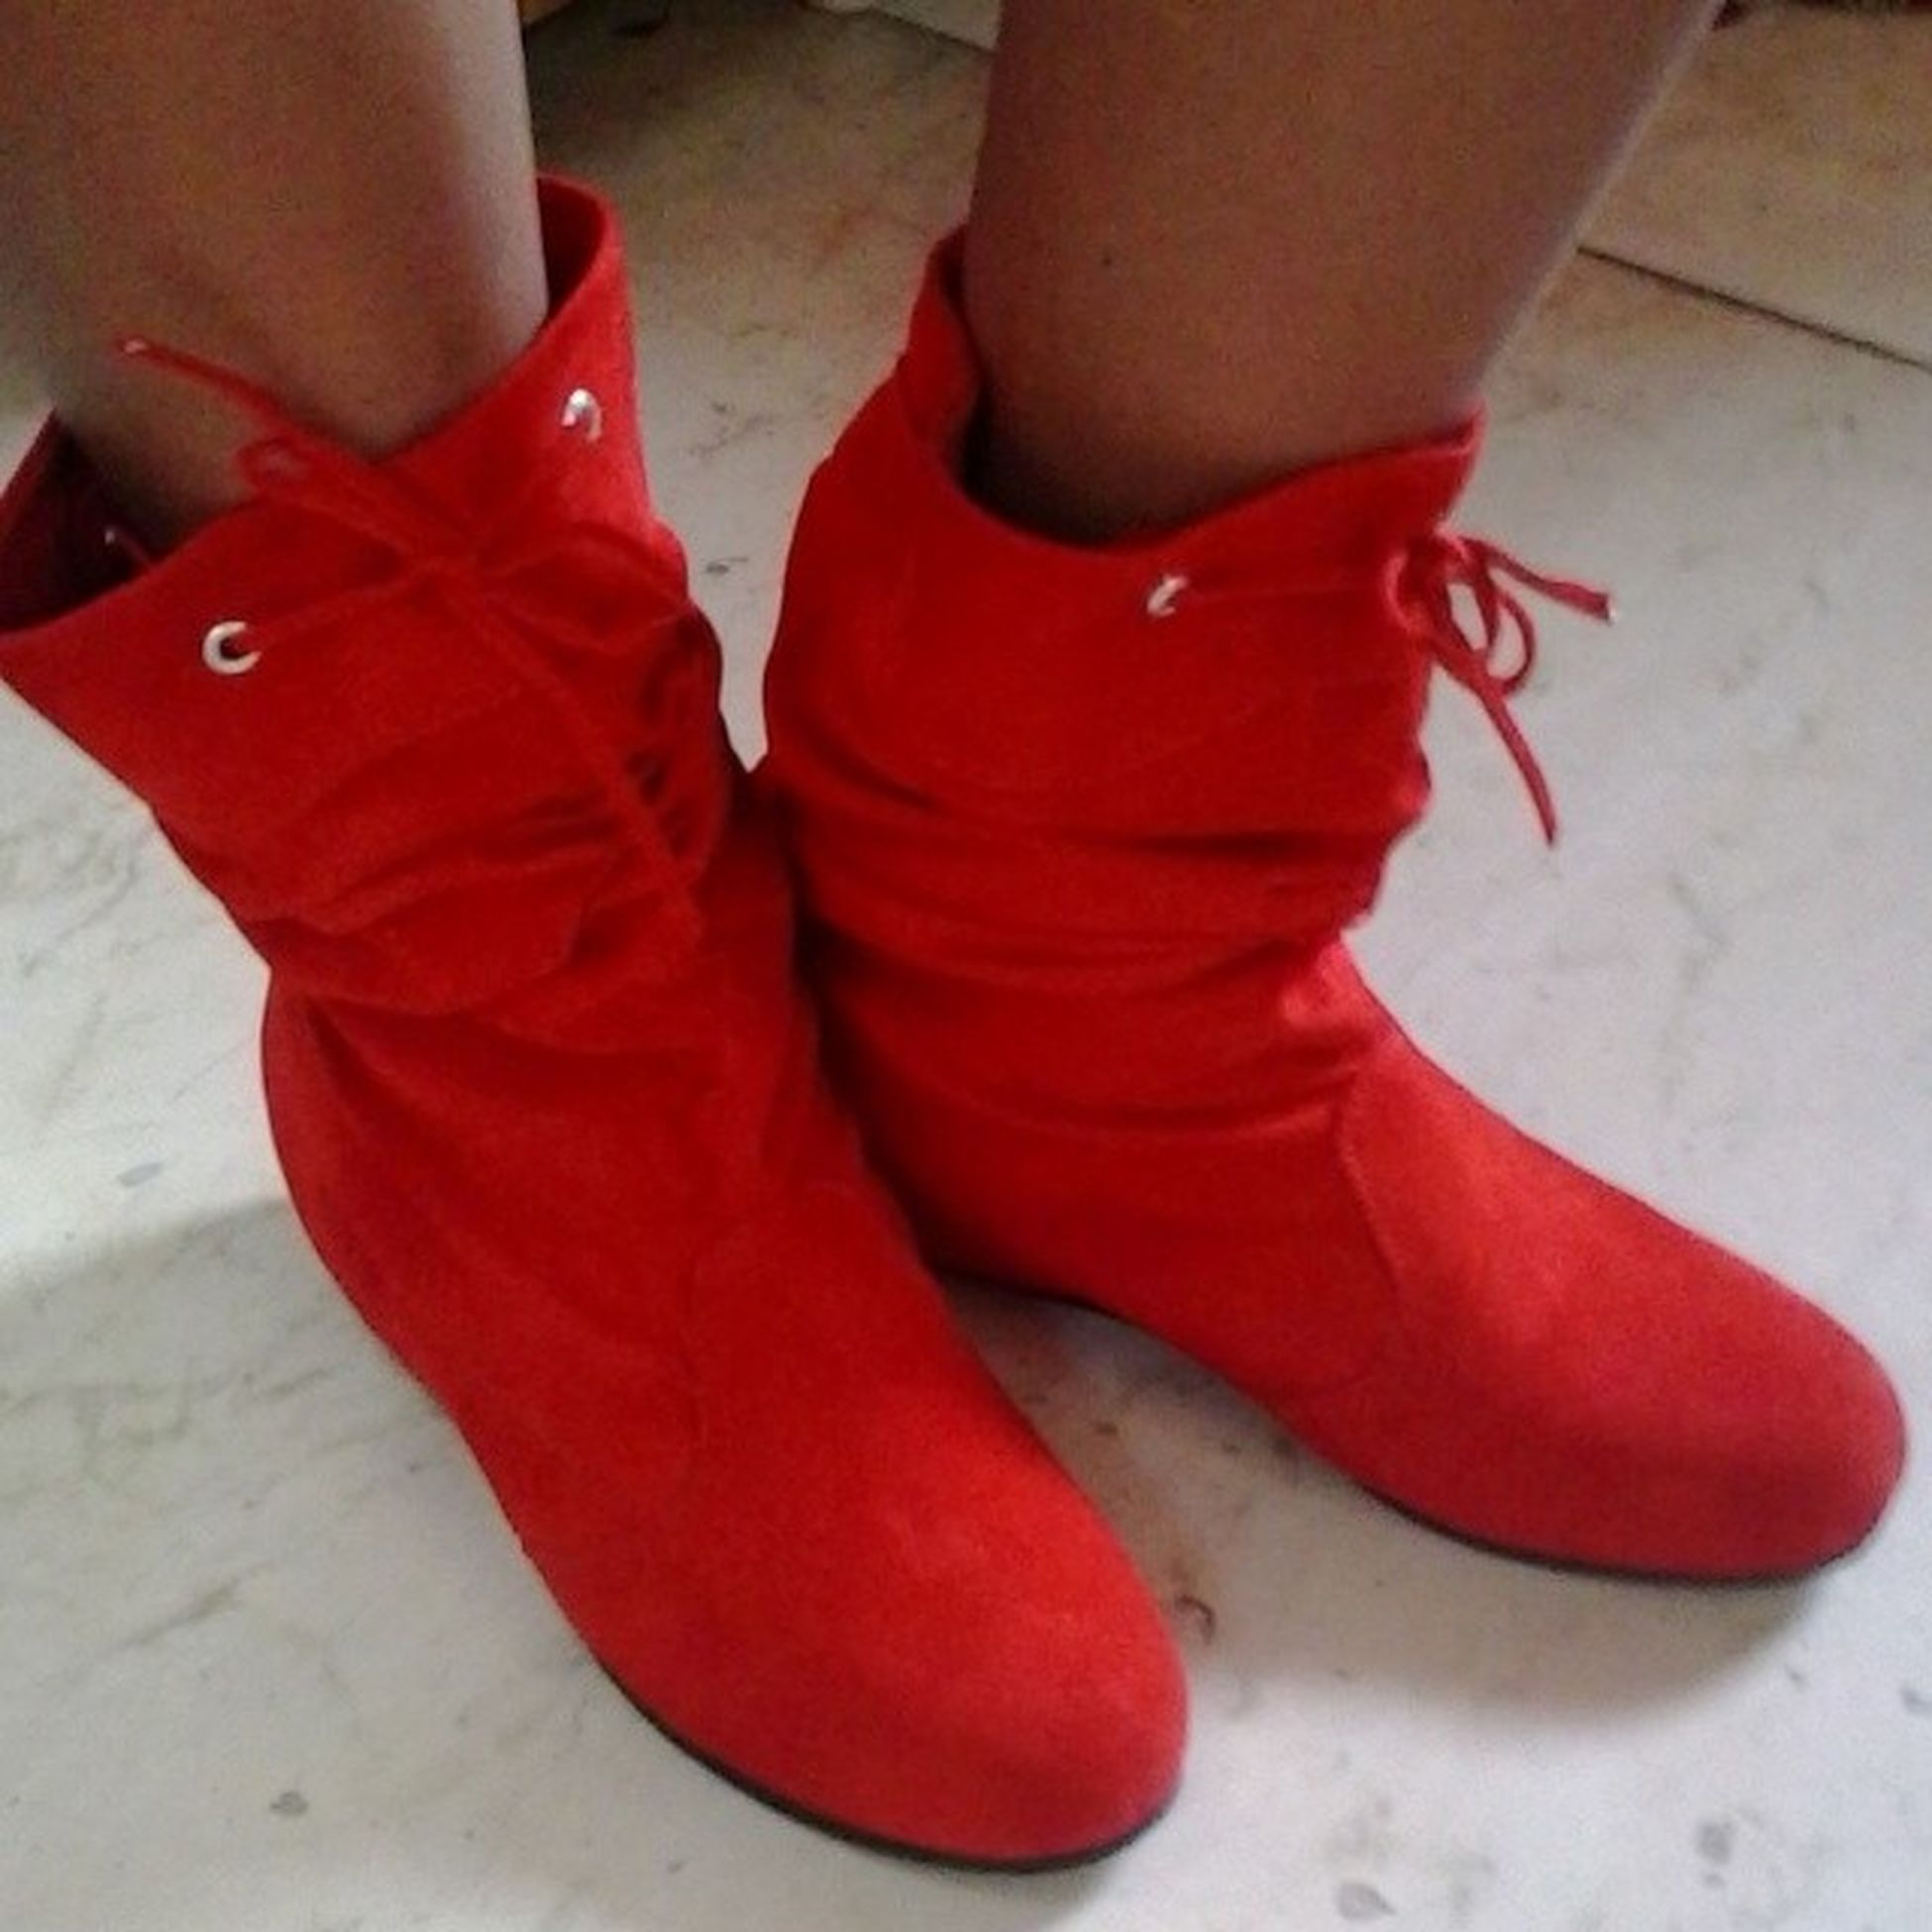 Red Redboots Redshoes Newshoes Winterishere Santasshoes Laces Allthingsred Allthingsnew Christmas Christmascolours Nofilter Instared Instashoes Instadaily Instaseason Instaaddict Instamine Instahappy Happy Me LoveThem